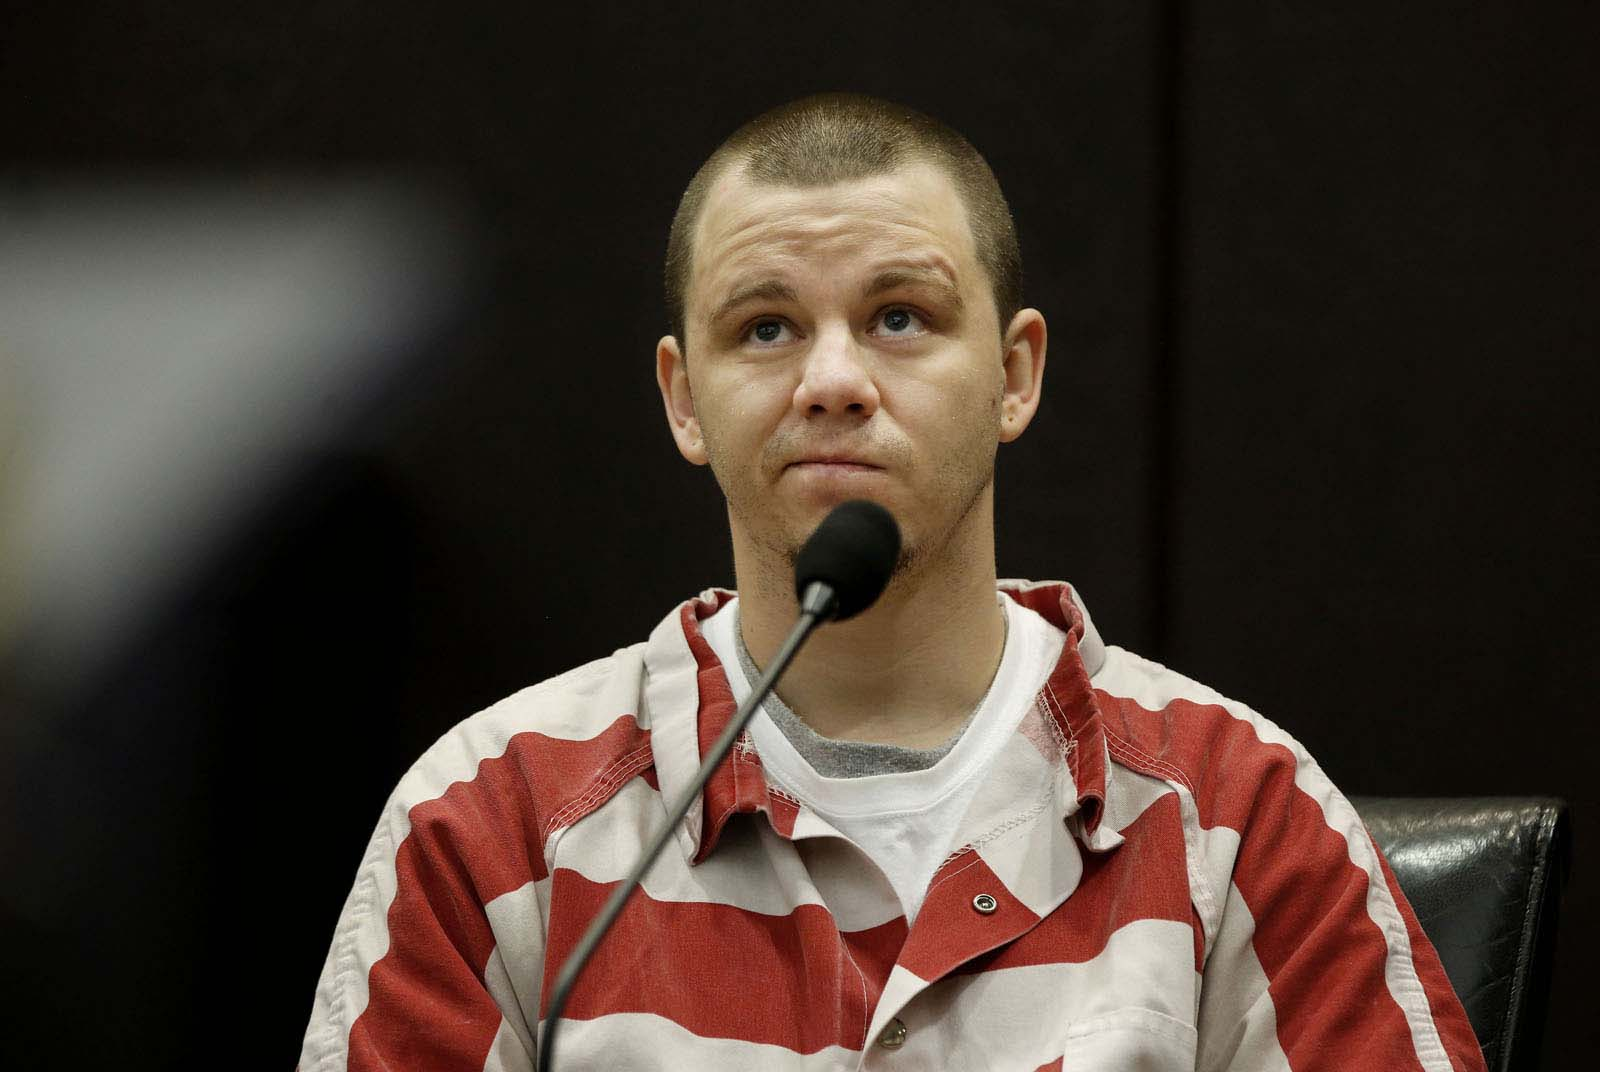 Levy County inmate Michael Angelo testifies during Pedro Bravo's murder trial in courtroom 1B of the Alachua County Criminal Justice Center Wednesday, August 13, 2014. Angelo was Bravo's cellmate at the Alachua County Jail. Bravo is accused of killing University of Florida student Christian Aguilar.  (Doug Finger/The Gainesville Sun/Pool)